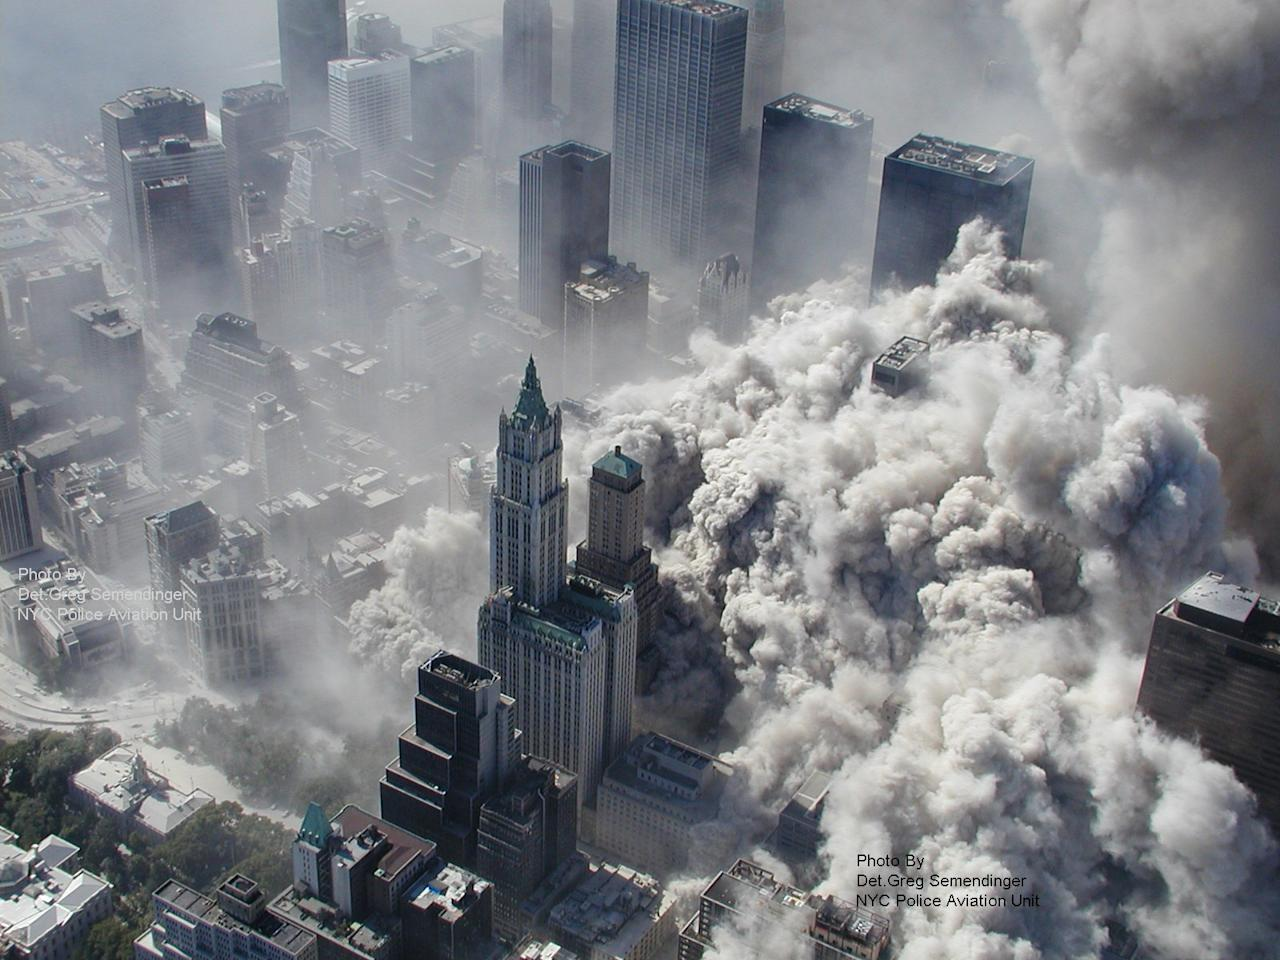 "A photo taken on September 11, 2001 by the New York City Police Department as the North Tower collapses, engulfing lower Manhattan in smoke and ash. <br><br>(Photo: AP Photo/NYPD, Det. Greg Semendinger)<br><br>For the full photo collection, go to <a target=""_blank"" href=""http://www.life.com/gallery/59971/911-the-25-most-powerful-photos#index/0"">LIFE.com</a>"